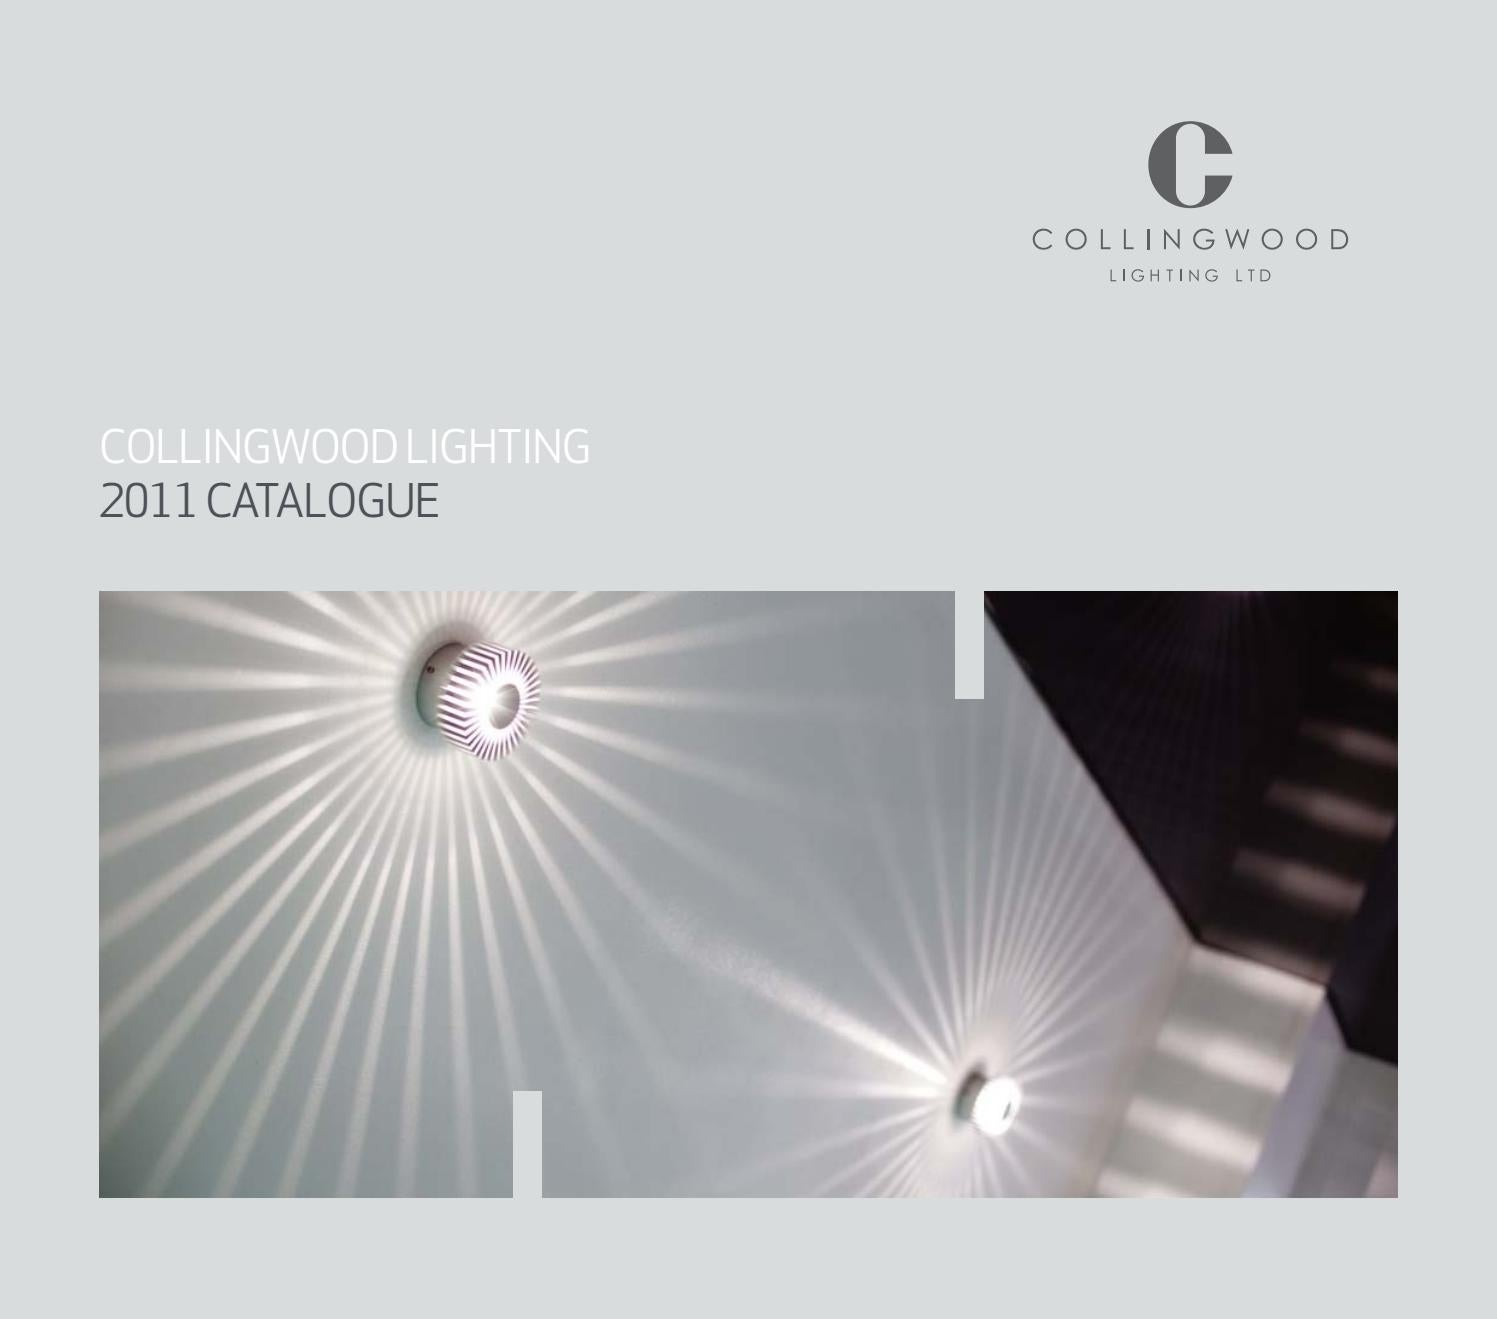 Collingwood Lighting Catalogue 2011 By Chris Twidale Issuu Power Led Driver Circuit 350ma Luxeon Electronics Projects Circuits